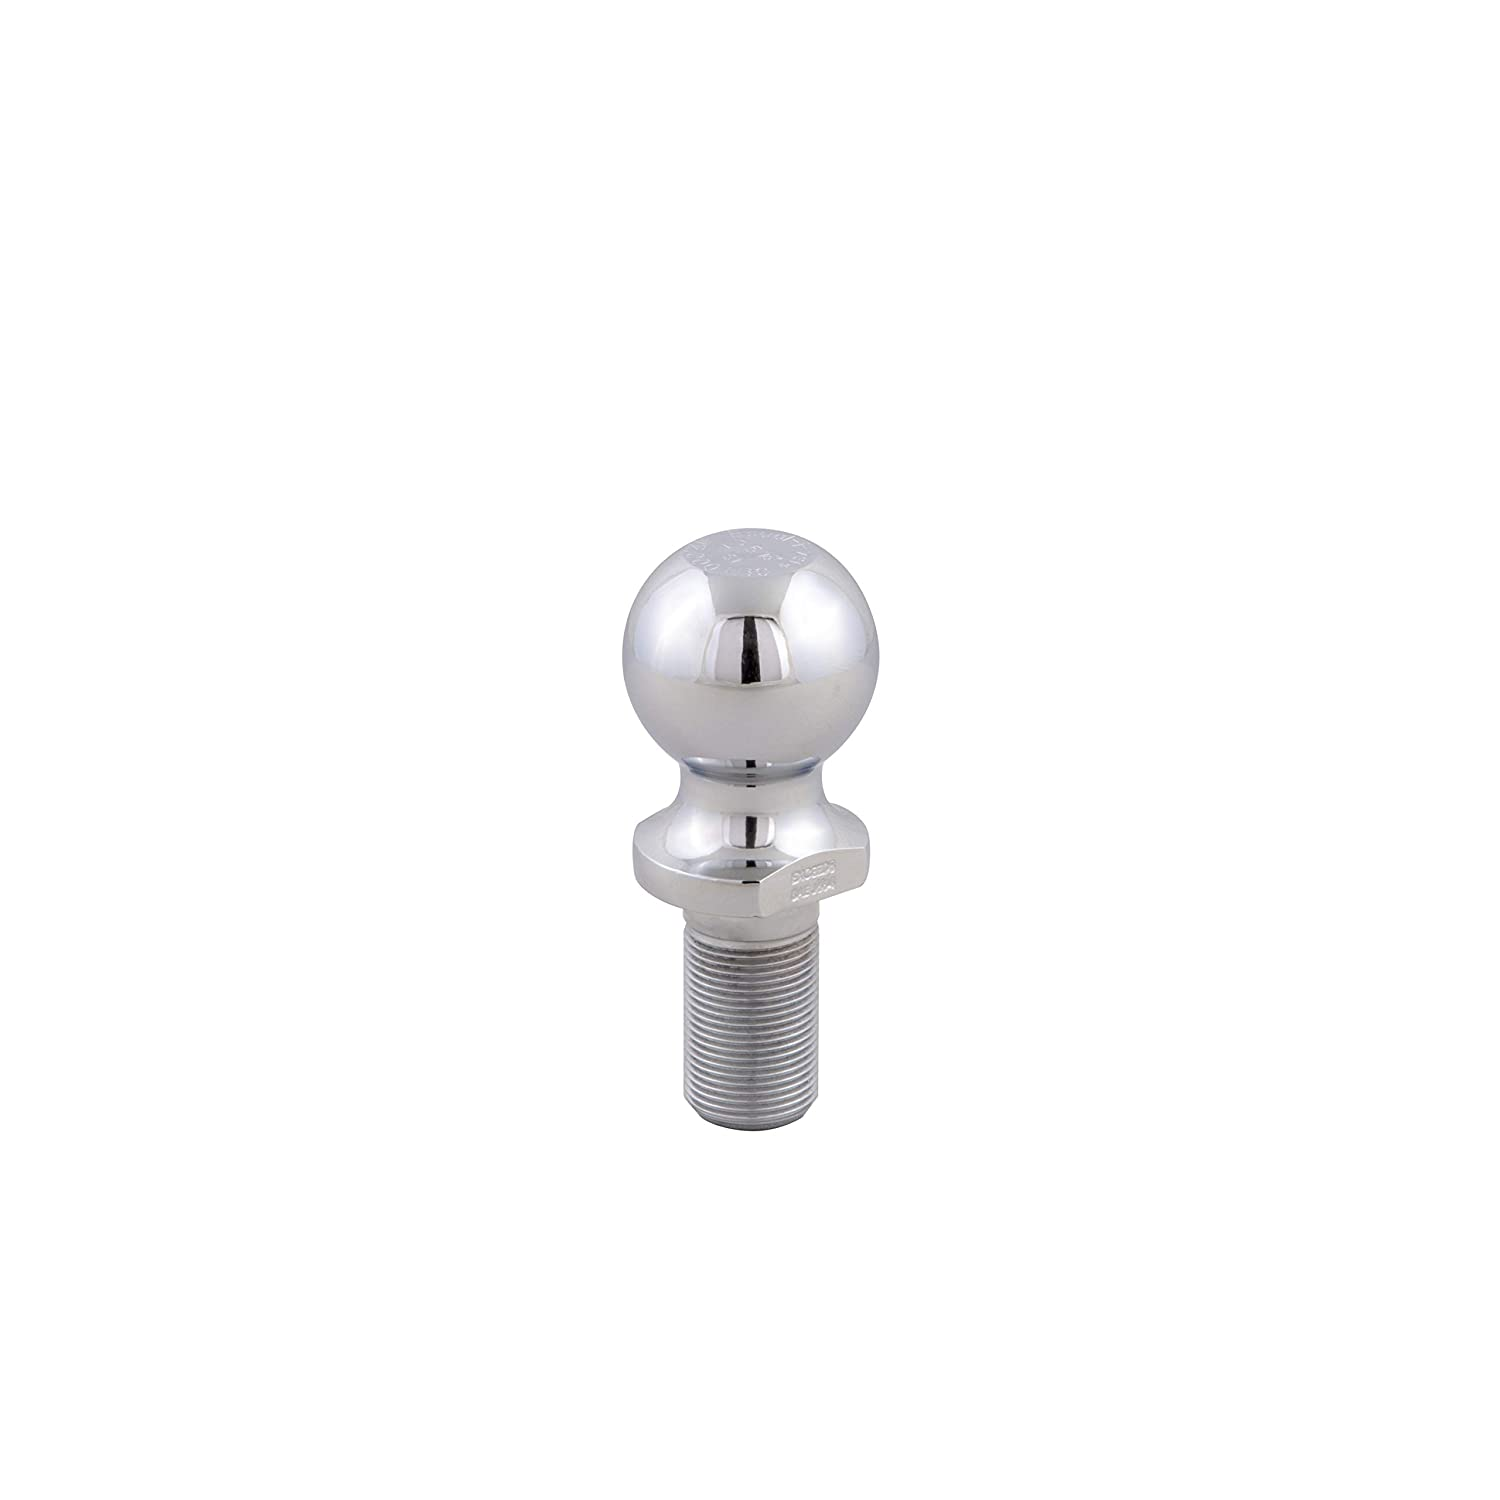 Equal-i-zer 91-00-6140 2-5//16 Inch Hitch Ball with 14,000 LBS Towing Capacity and 1-1//4 Inch Diameter Shank